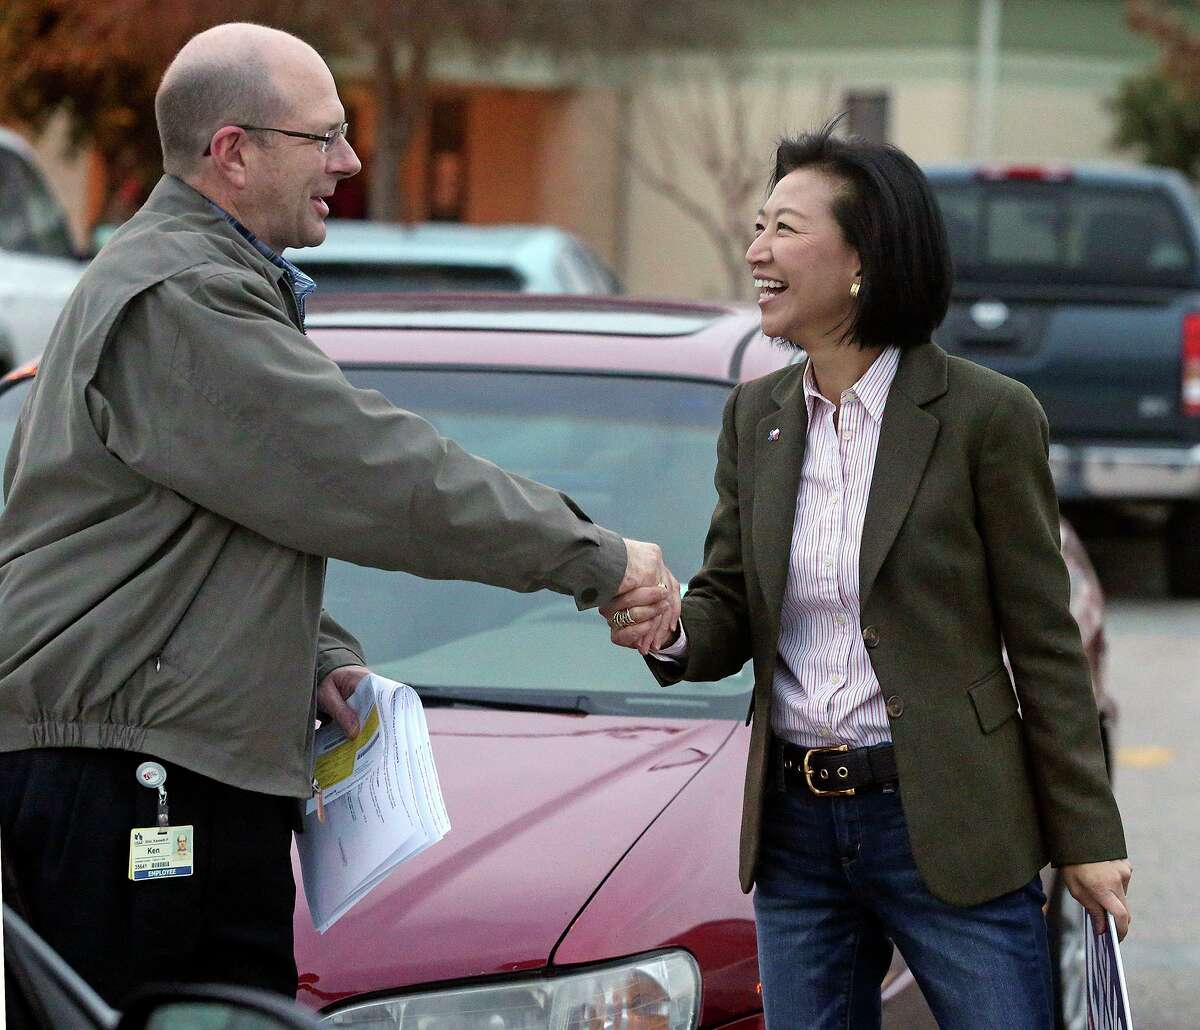 Elisa Chan thanks voter Ken Ebel at Barbara Bush Elementary School as she continues to work during voting on March 4, 2014, her last campaign. Chan said she is definitely running for District 122 if state Rep. Lyle Larson, as expected, steps aside.